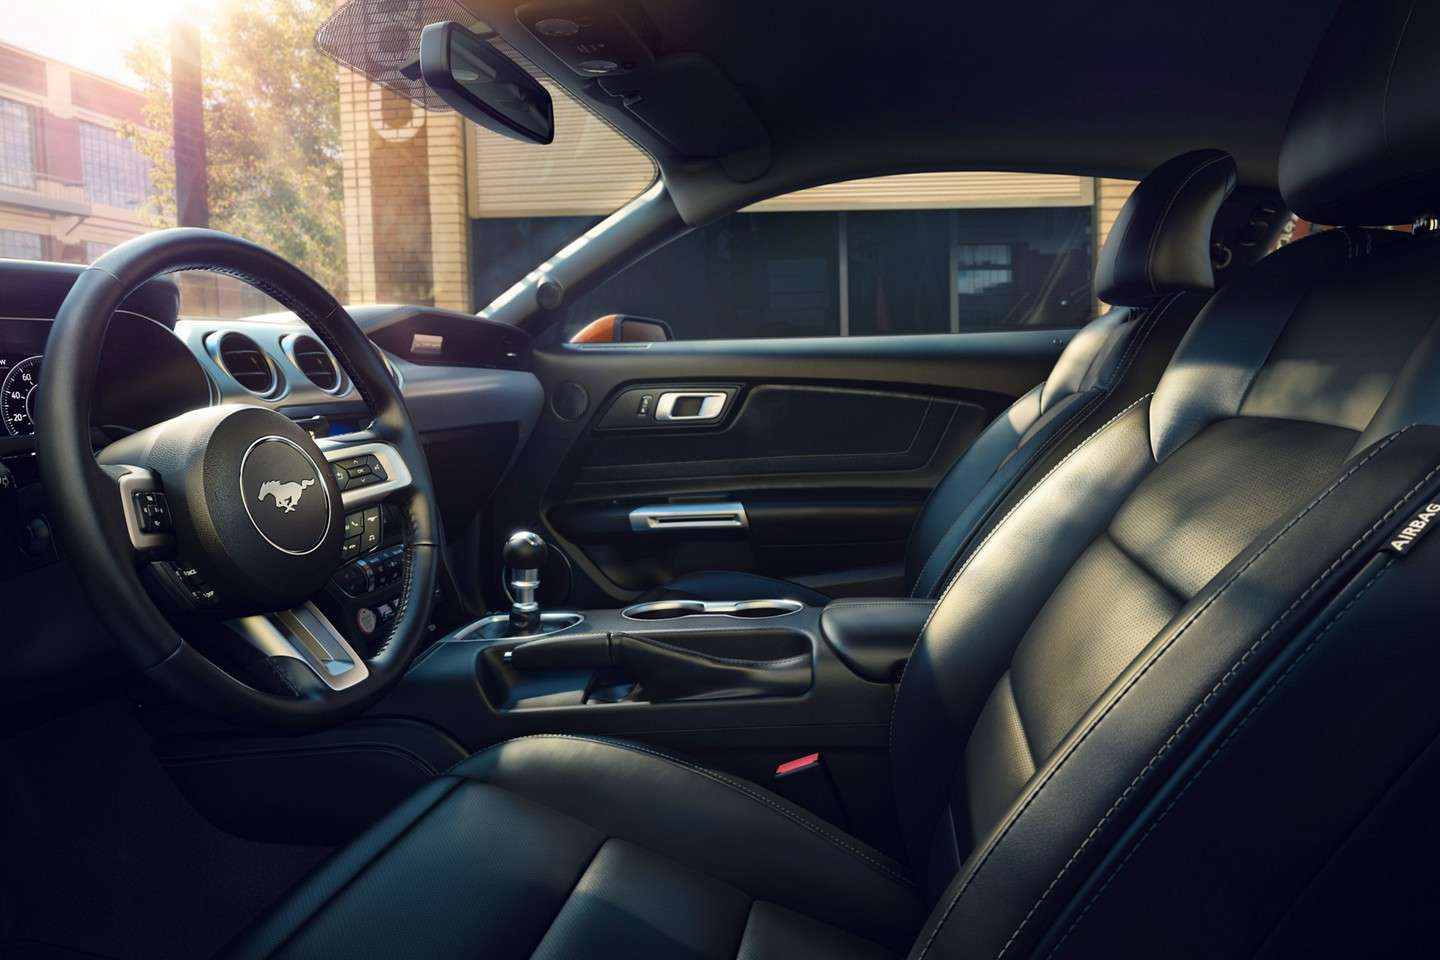 Ford Mustang 2019 Cockpit, interior, steering wheel, center console, front seats.